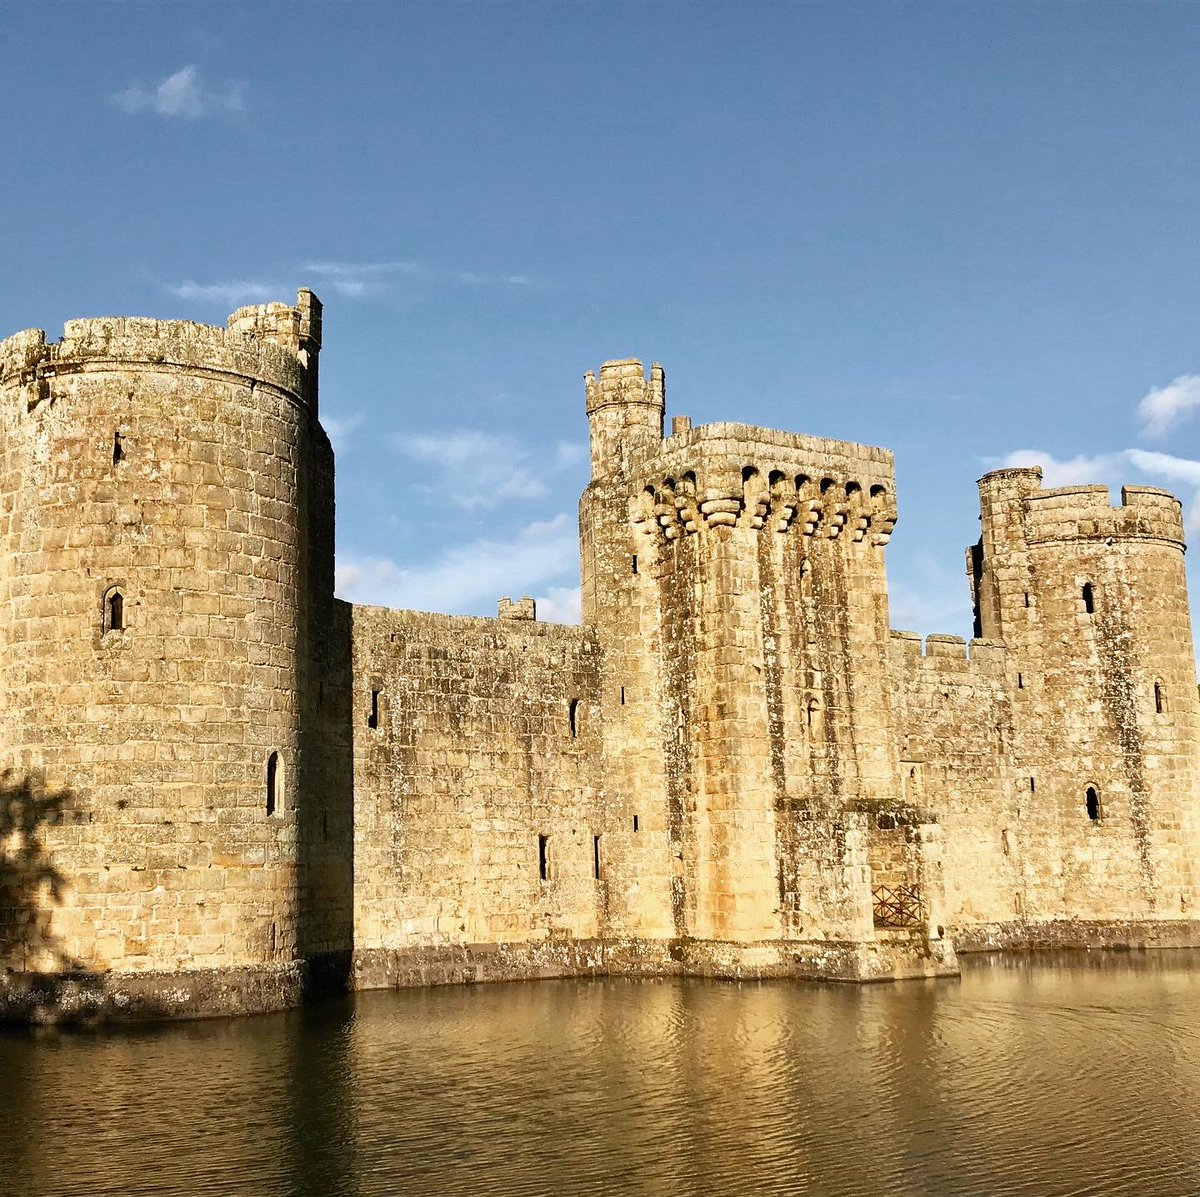 Bodiam is so beautiful 😍 Brings back memories of third year Archaeology 'castle studies' module 😍 @BodiamCastleNT #BodiamCastle #castles #medieval #nationaltrust #14thcentury #moat #archaeology https://t.co/DPVGTe3ubf